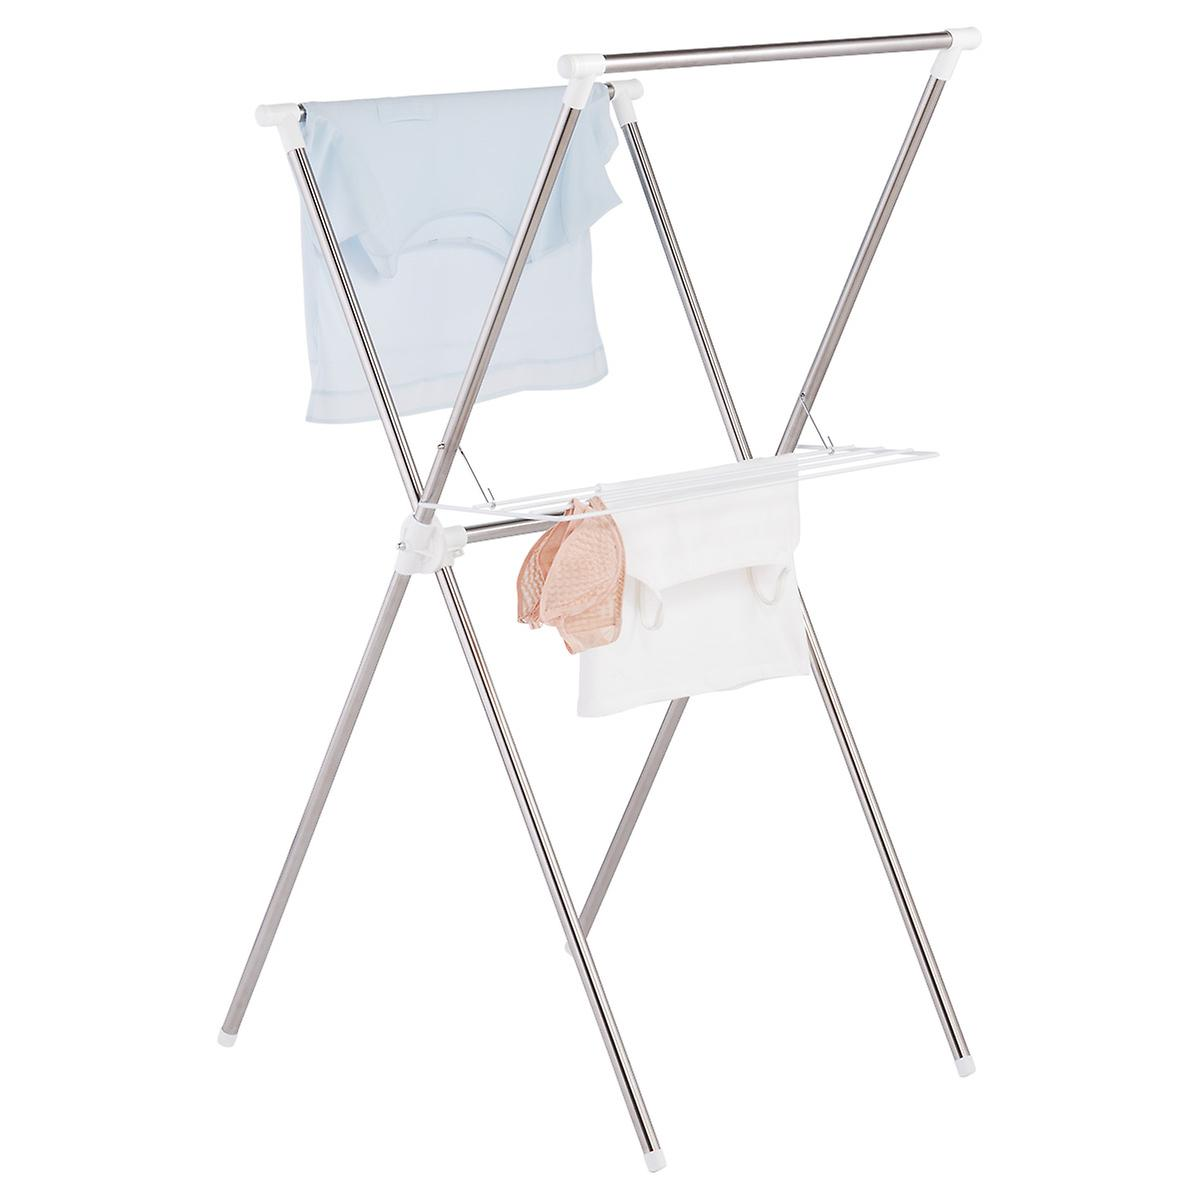 Stainless Steel Folding X-Frame Clothes Drying Rack